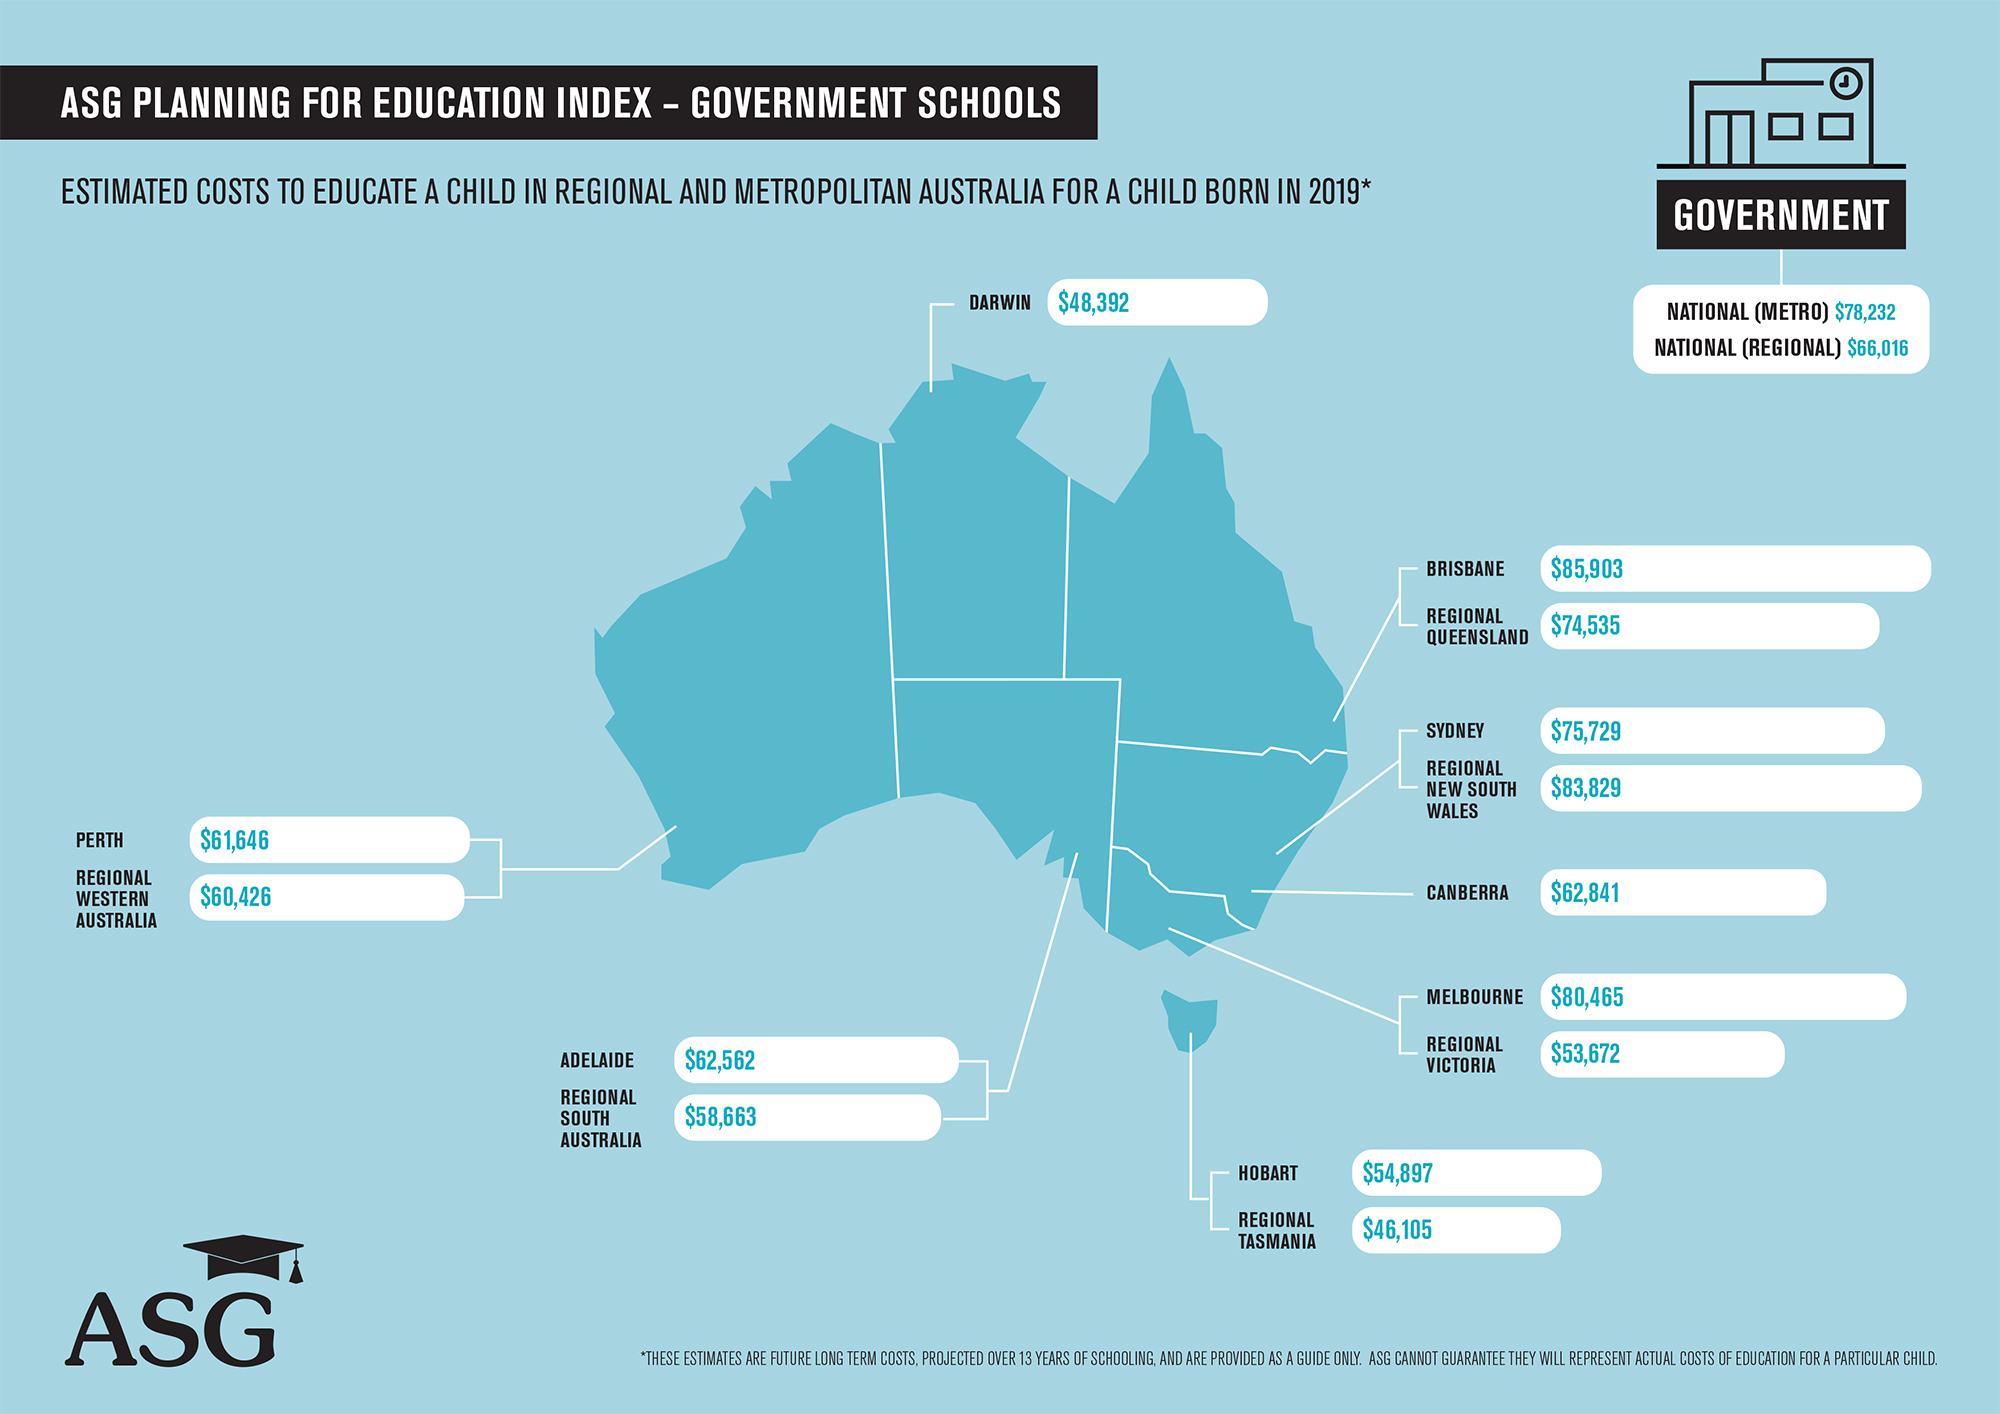 Cost of Education - NATIONAL GOVERNMENT